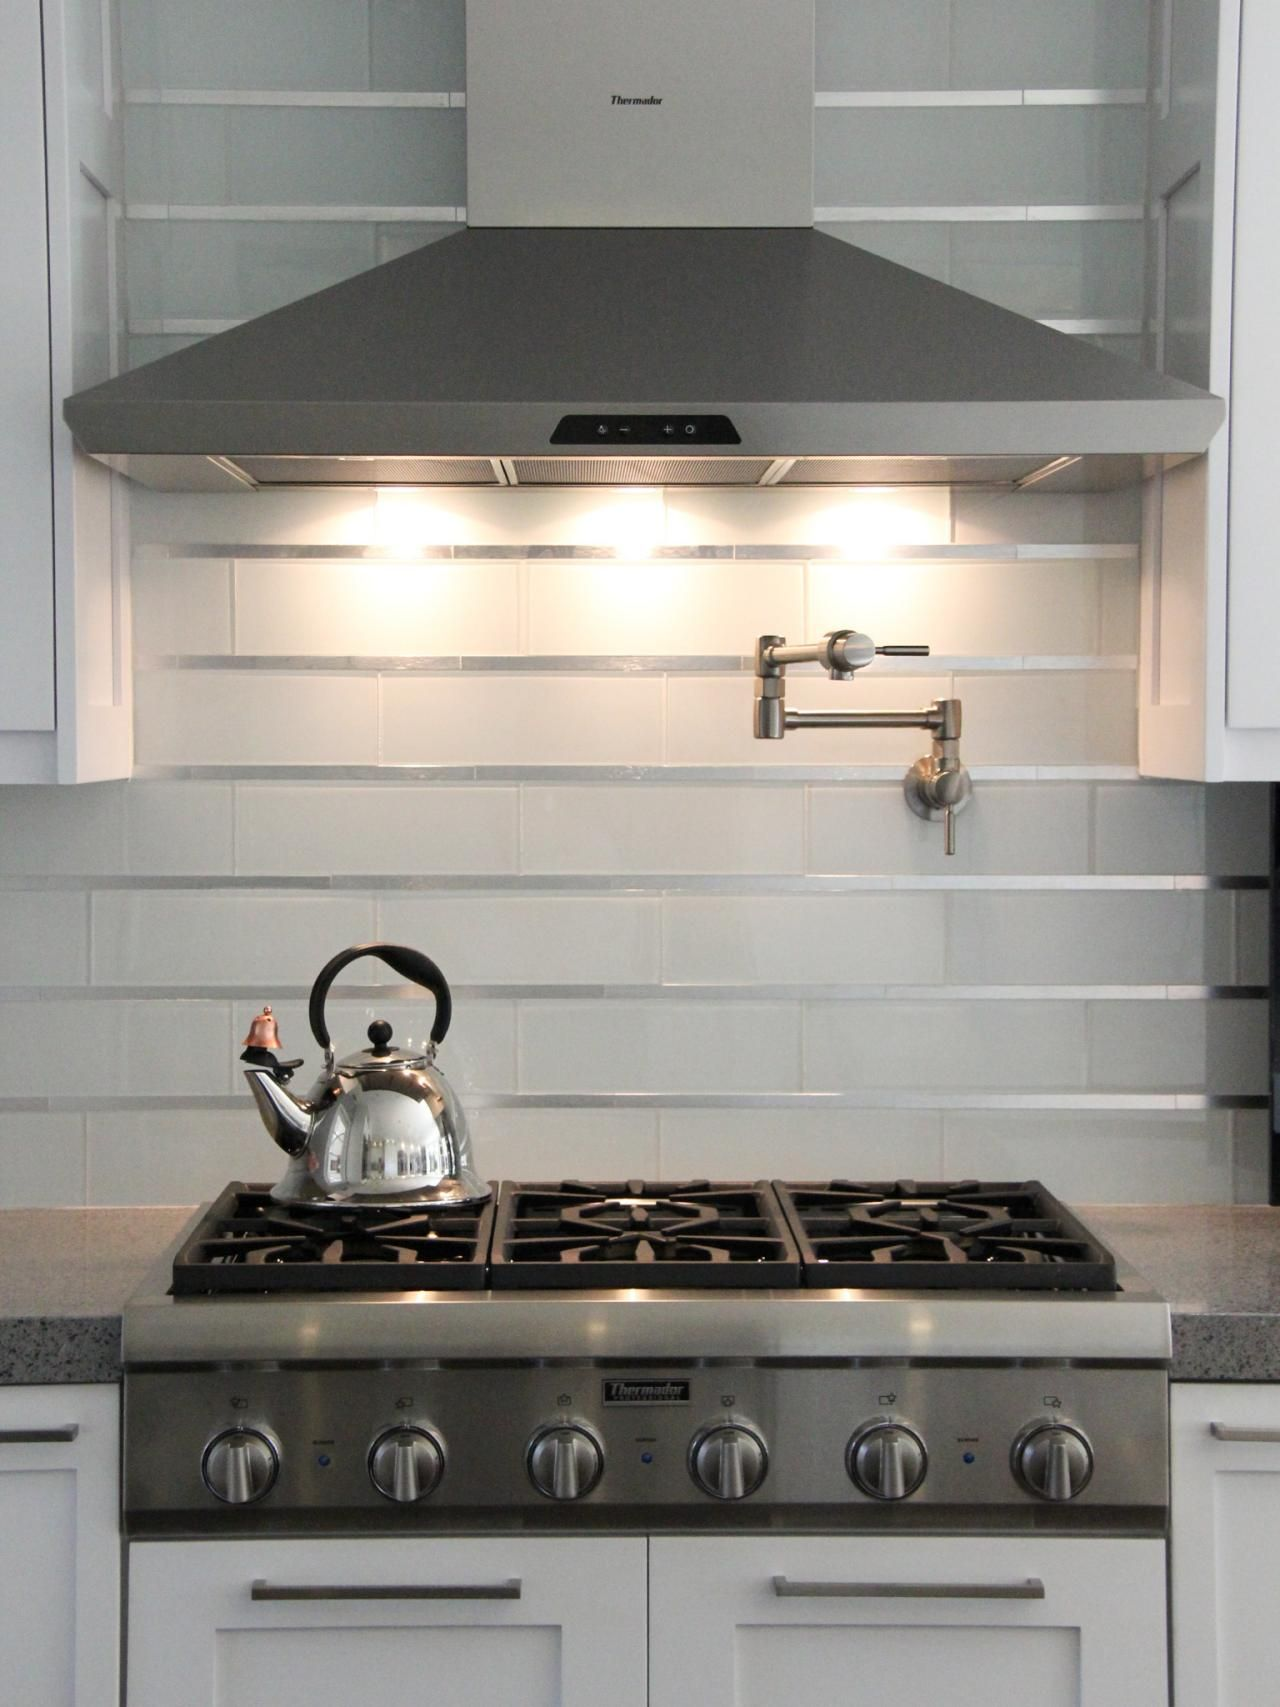 11 Creative Subway Tile Backsplash Ideas Kitchen Design With Cabinets Islands Backsplashes Hgtv